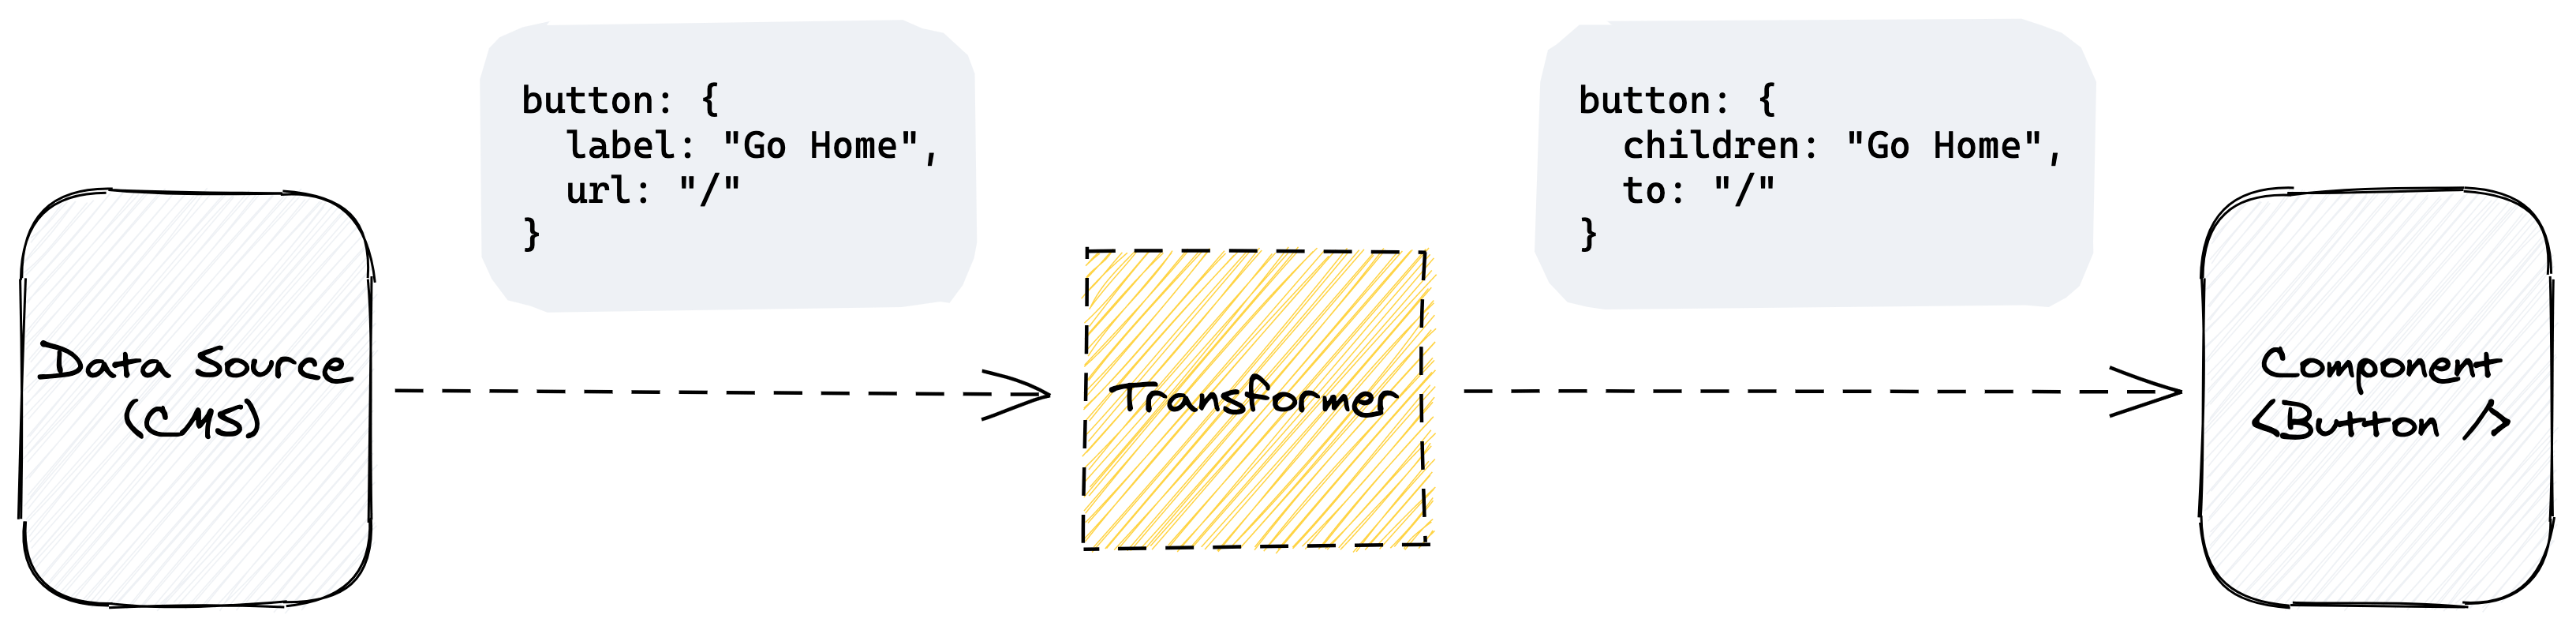 Illustration showing a rounded square that says Data Source pointing to a yellow box that says transformer, pointing to another rounded square that says component. There is a small code snippet on both sides of the yellow square showing how it transforms the Label and URL fields to Children and To, respectively.